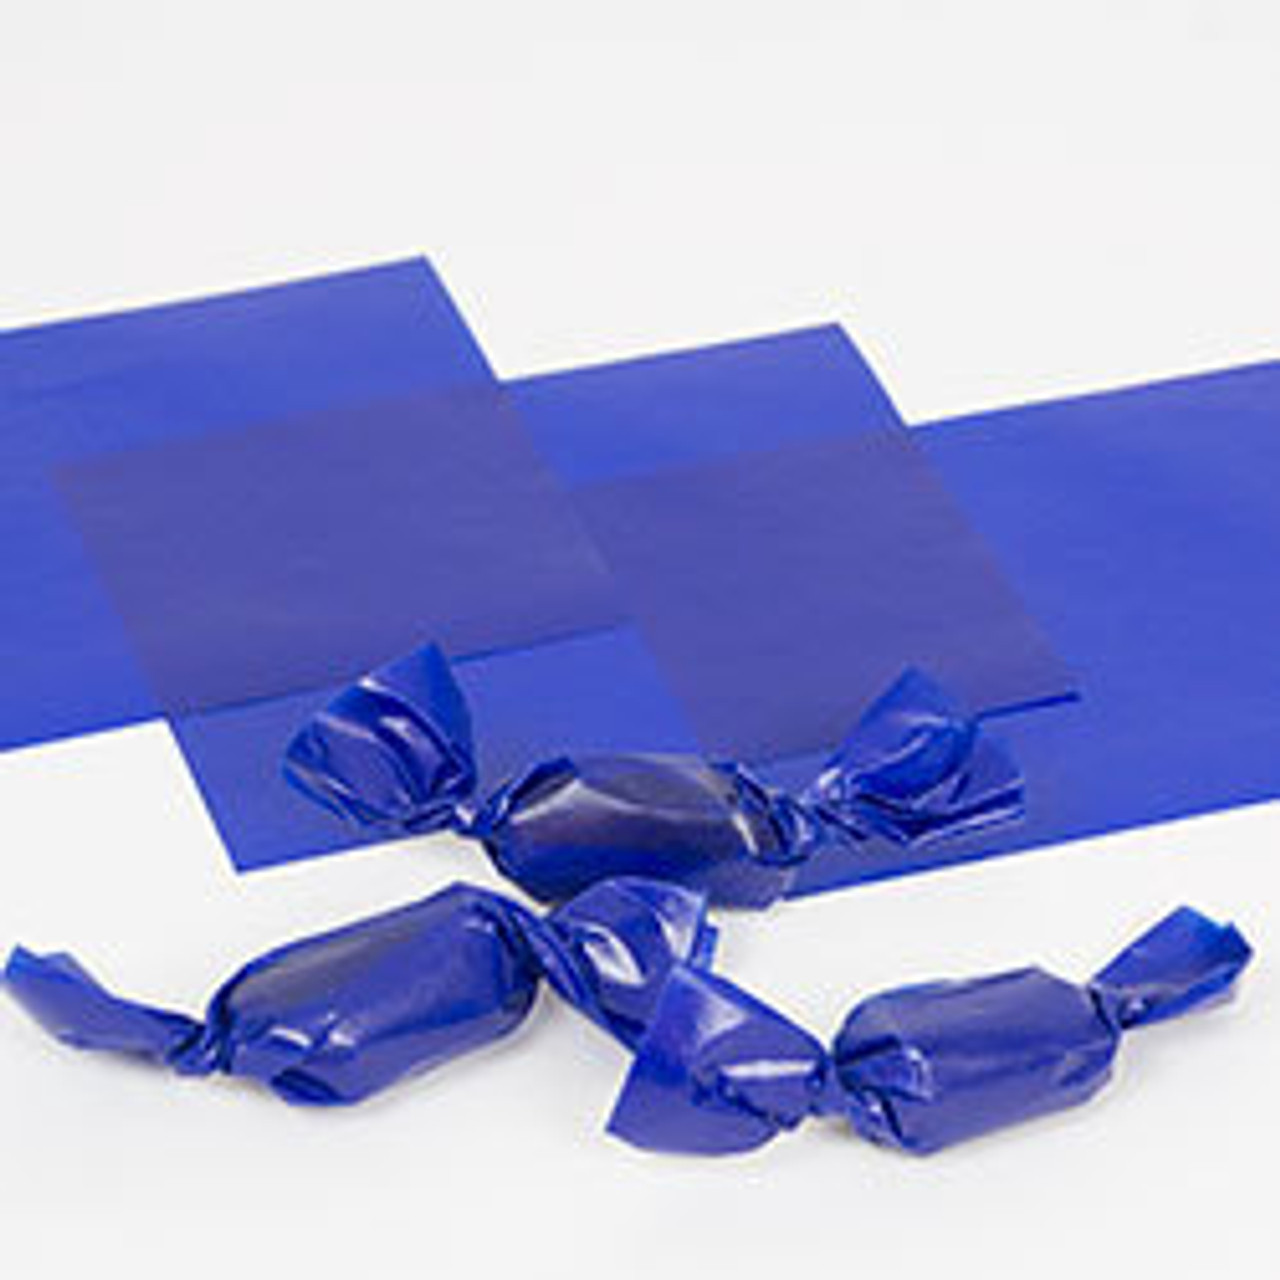 DARK BLUE WRAPPERS